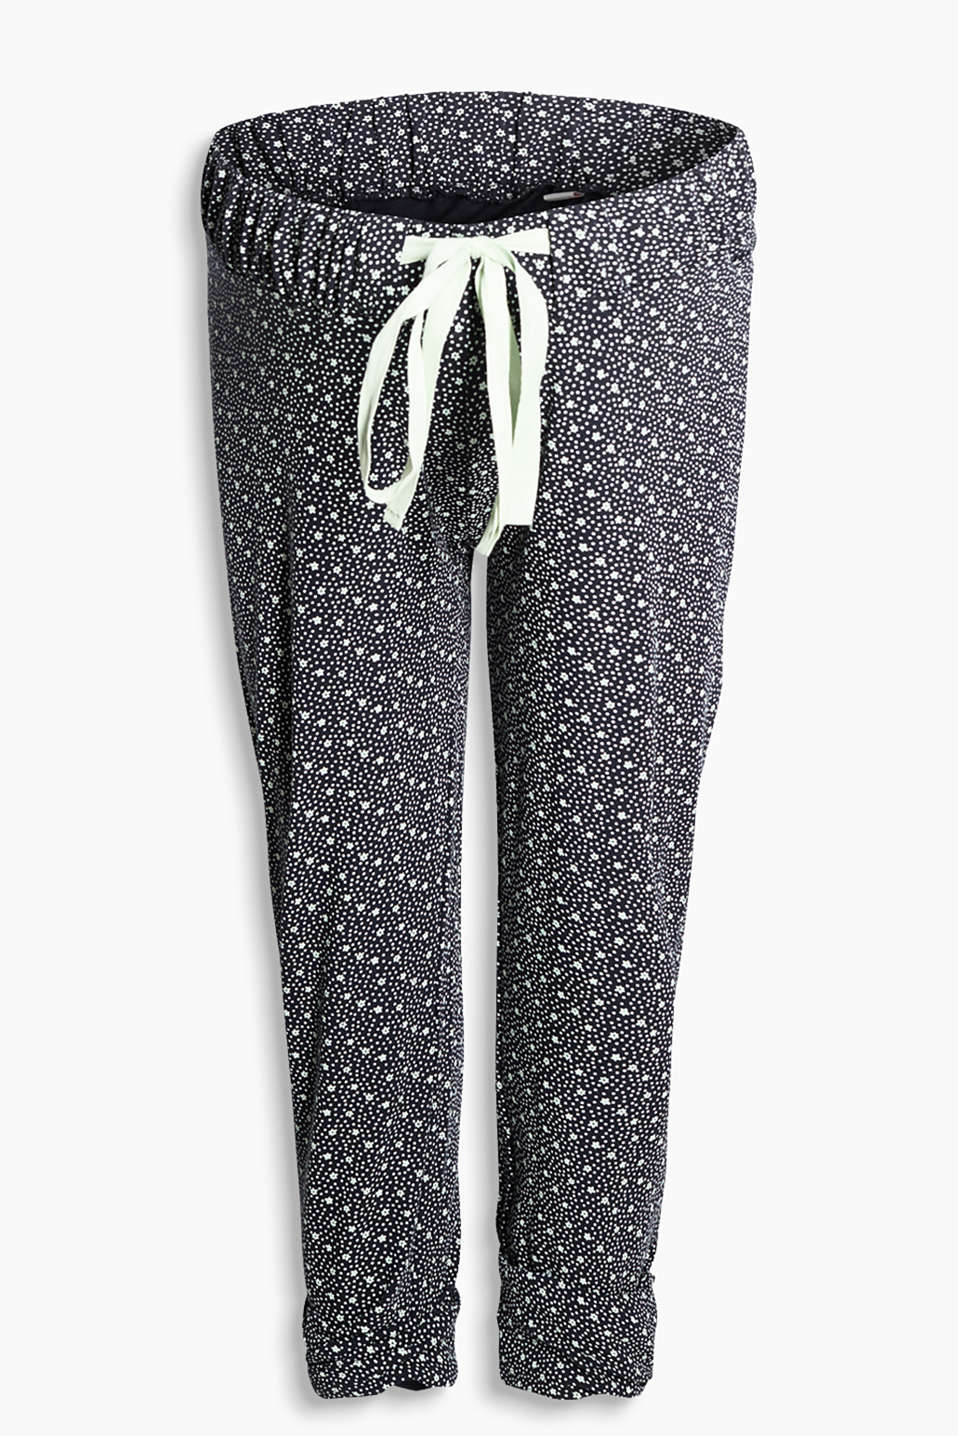 With a pretty floral design: Trousers made from soft stretch jersey with a wide elasticated waistband